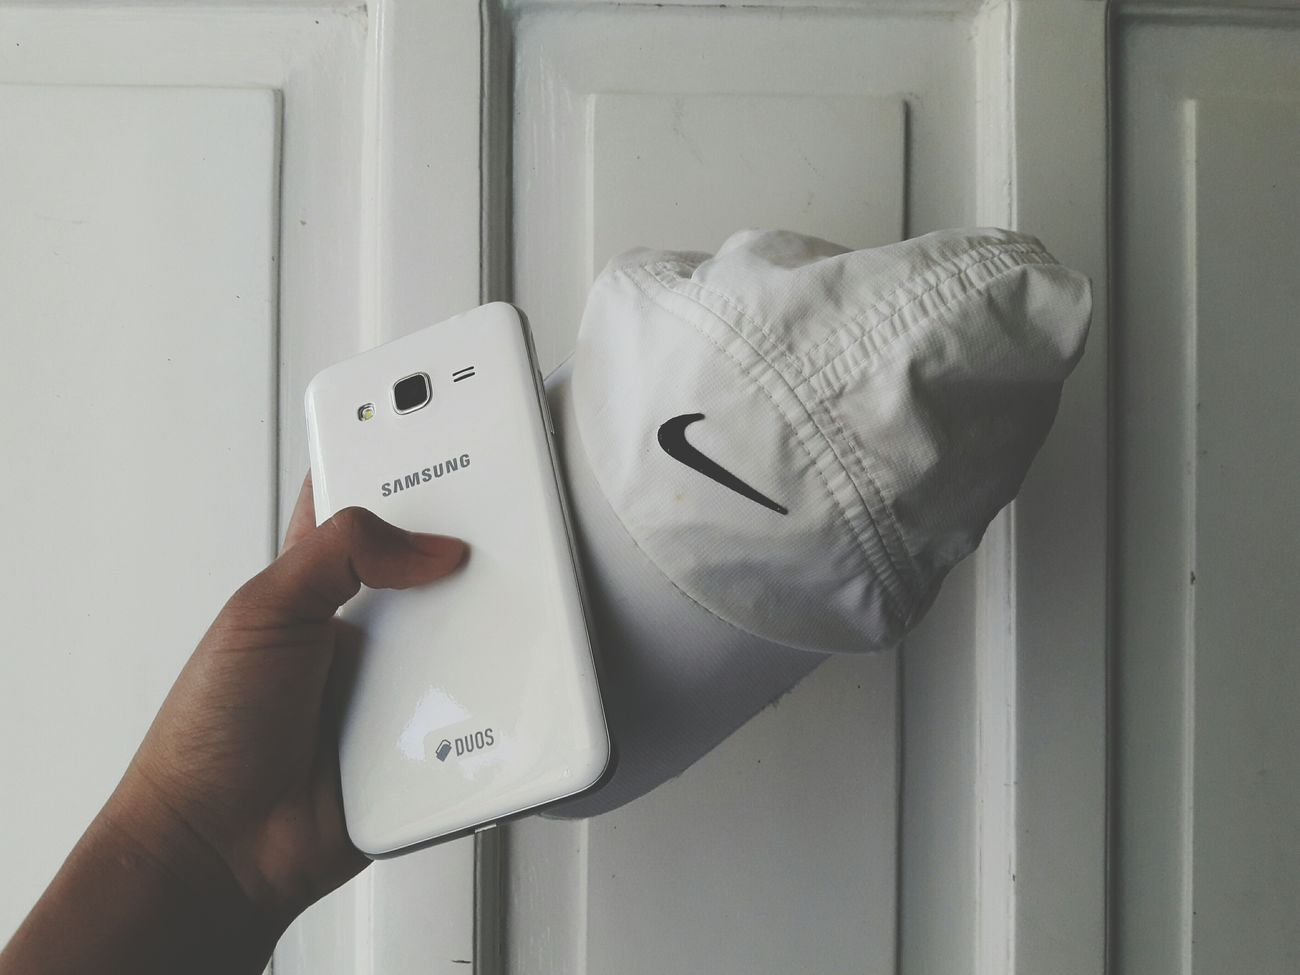 nike + samsung + brandless door = 😎 Phone Photography Photooftheday Mobilephotography Nike Nikecap likeforlike #likemyphoto #qlikemyphotos #like4like #likemypic #likeback #ilikeback #10likes 20likes likere Folow For Follow First Eyeem Photo